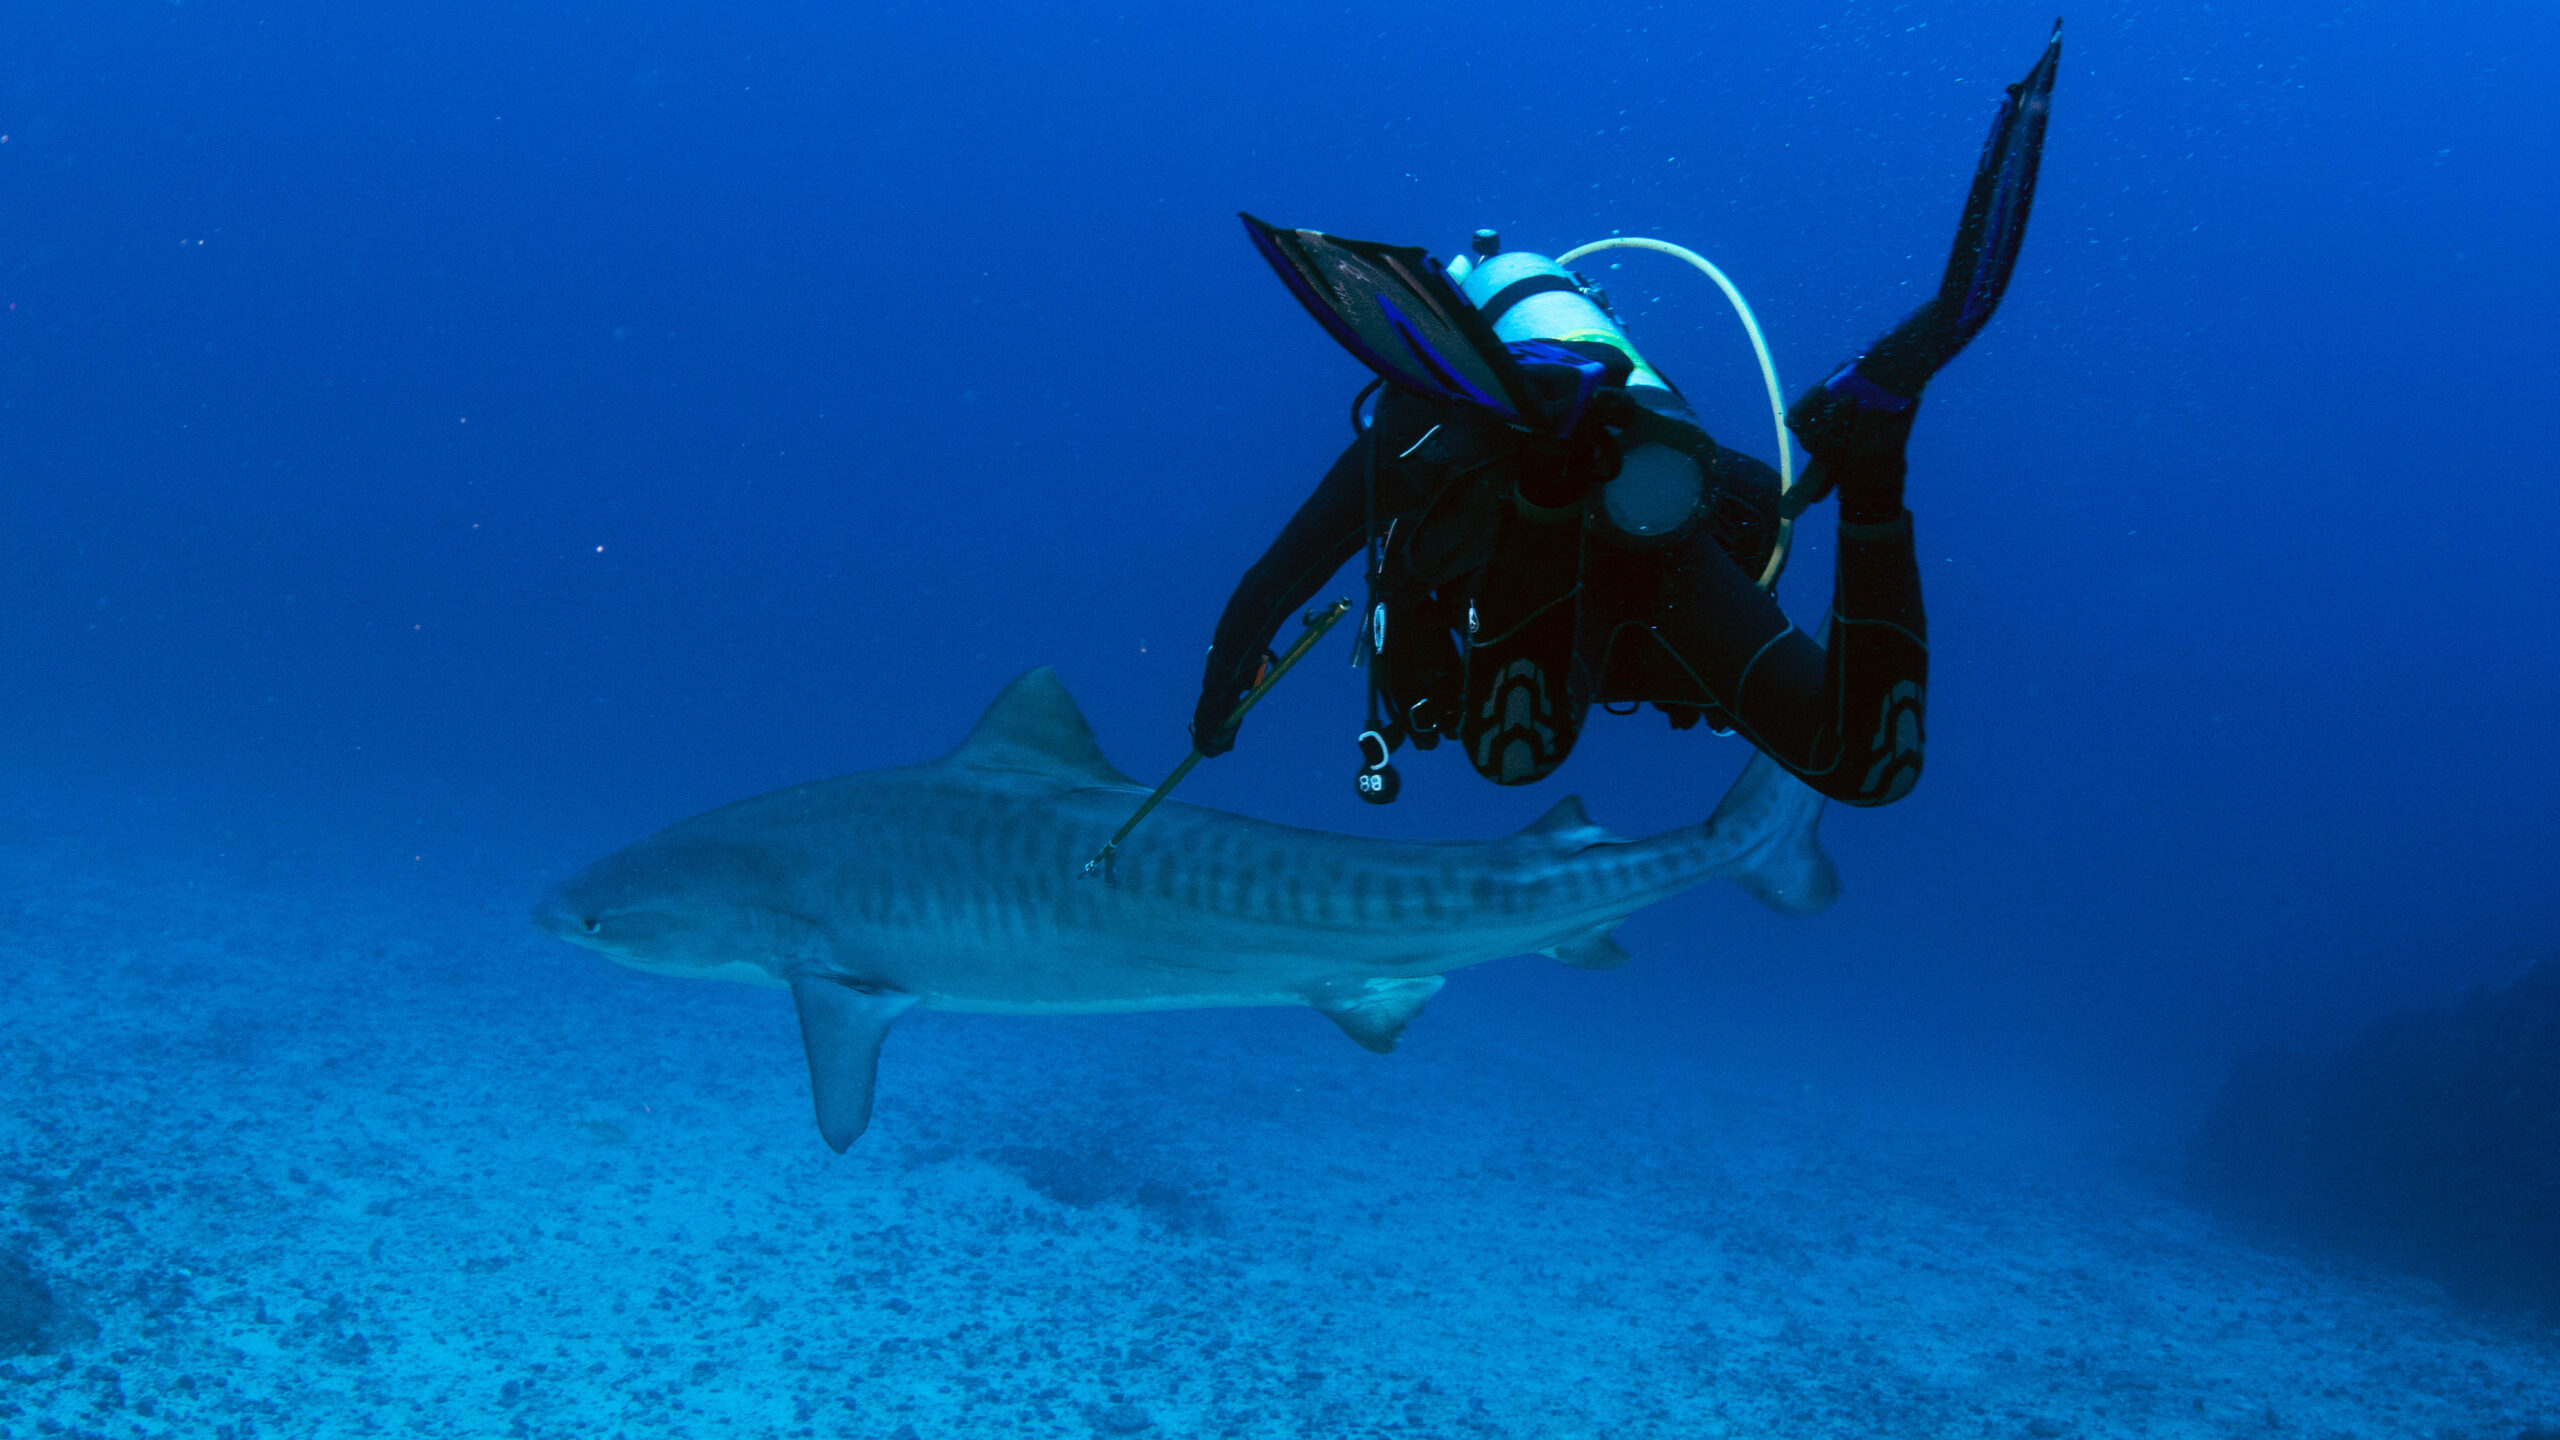 Bay Area Scientist Successfully Tags Aggressive Tiger Shark Linked to Diver Death in Costa Rica